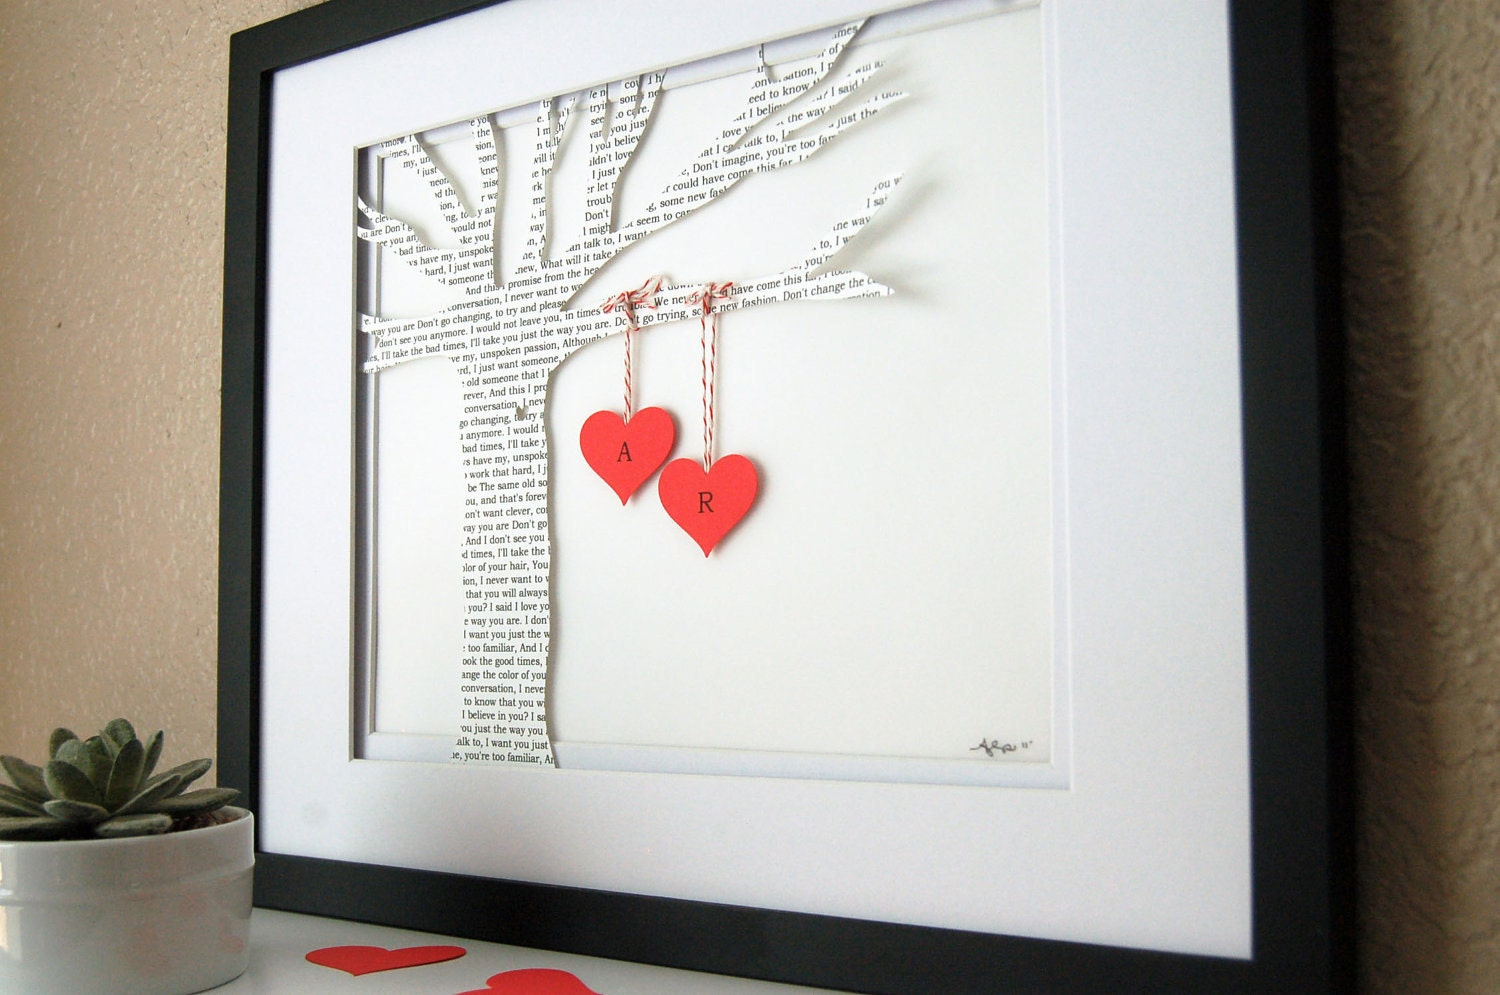 Creative Wedding Gifts For Bride From Groom : Unique Wedding Gift Ideas For Bride And Groom Personalized wedding ...